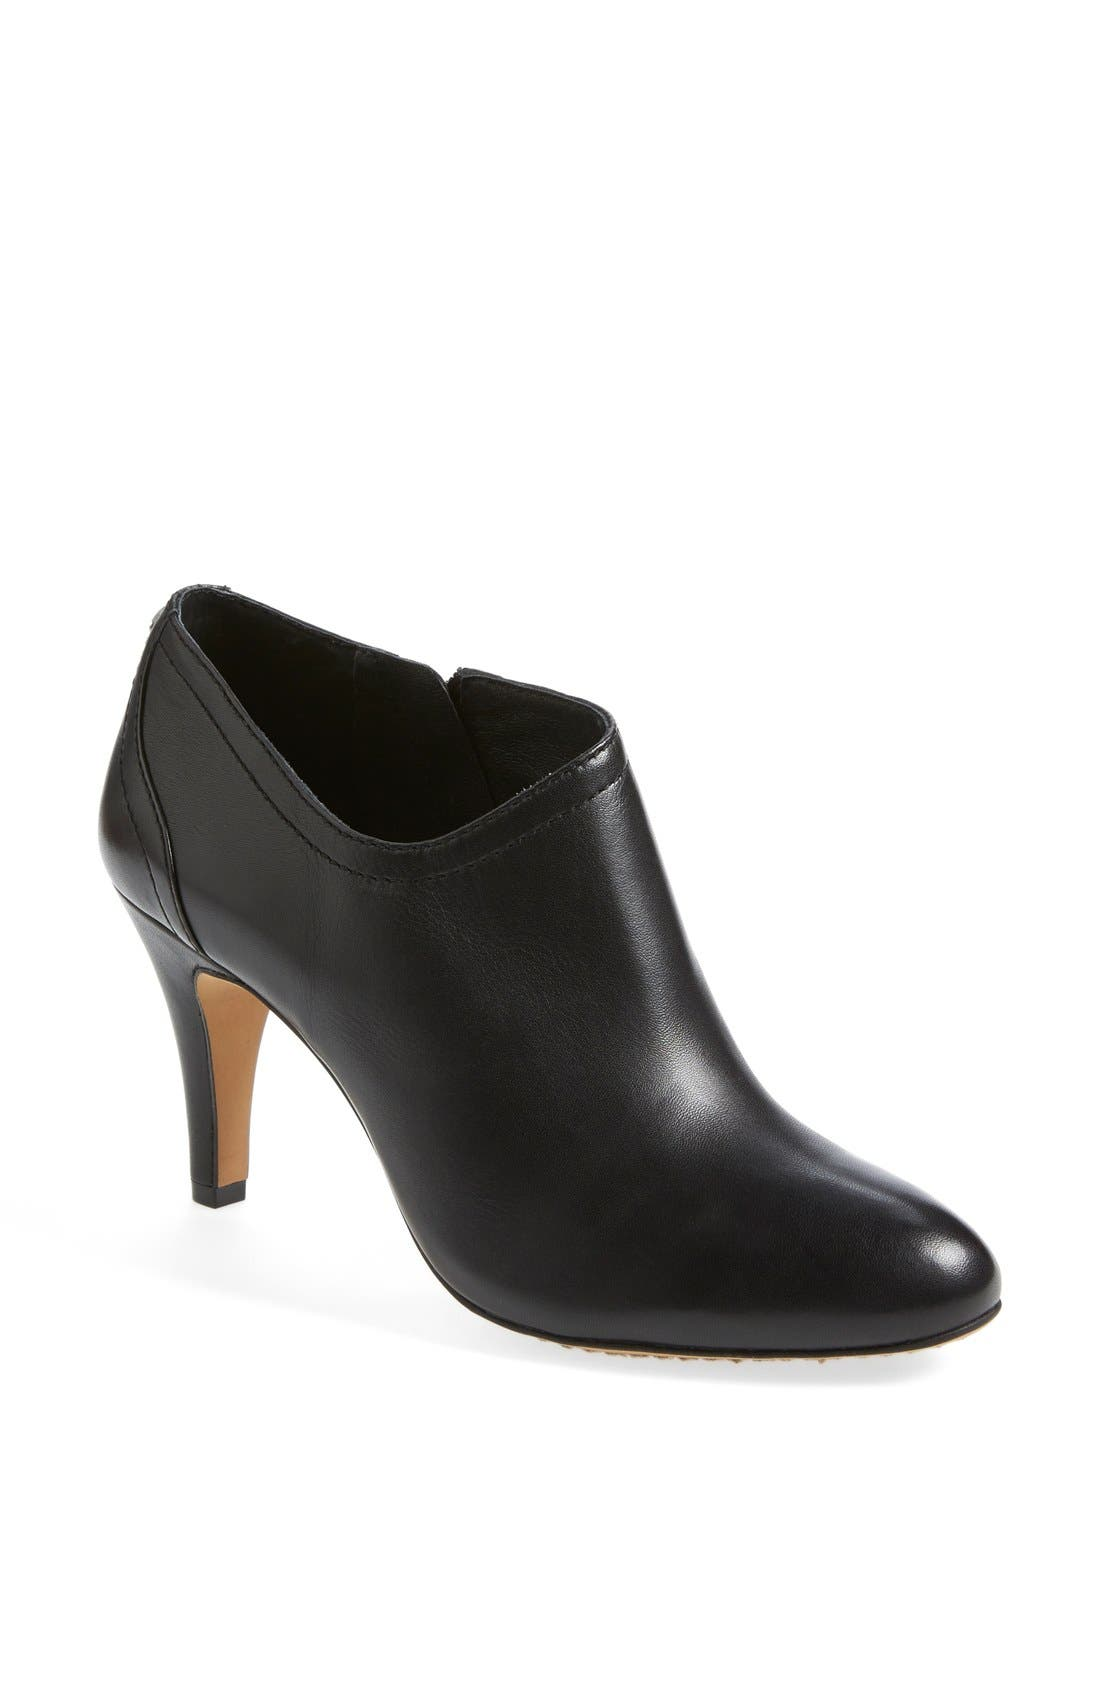 Alternate Image 1 Selected - Vince Camuto 'Vala' Bootie (Nordstrom Exclusive) (Women)